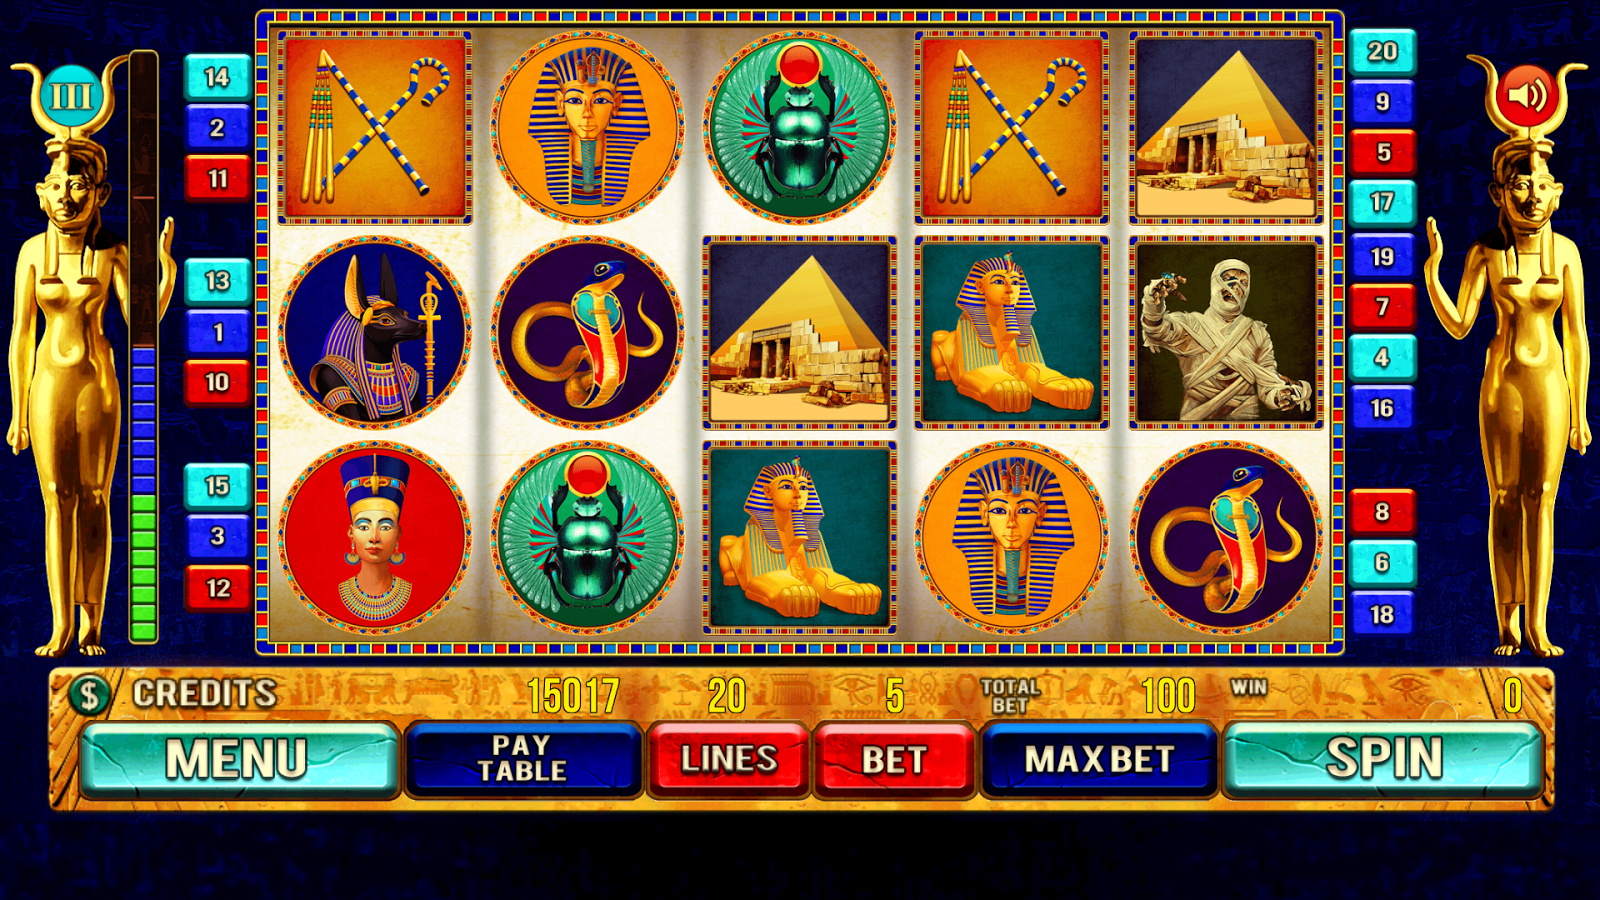 Voila! Slot - Play for Free in Your Web Browser